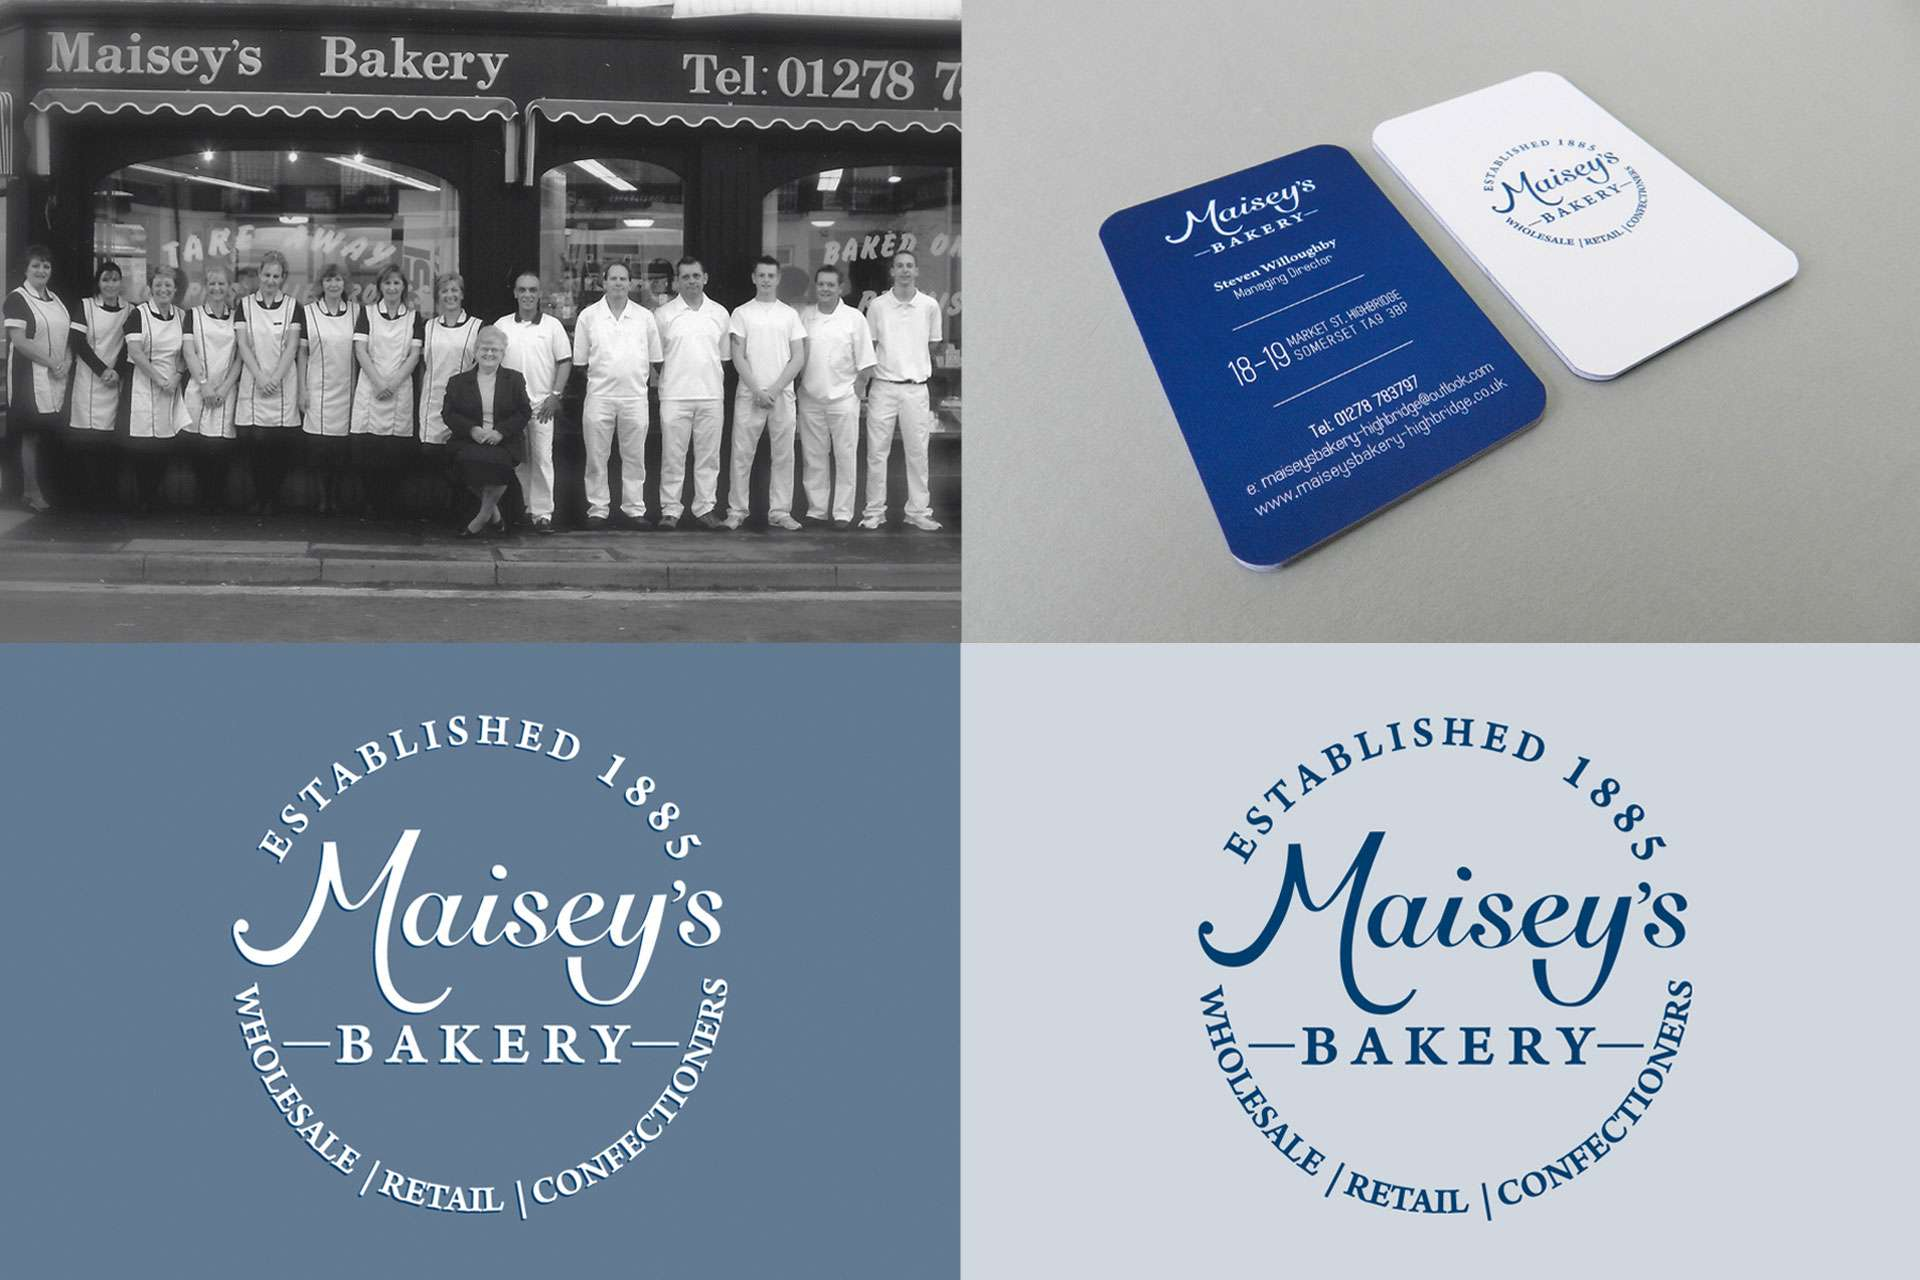 Maisey's Bakery shop graphic design, Somerset